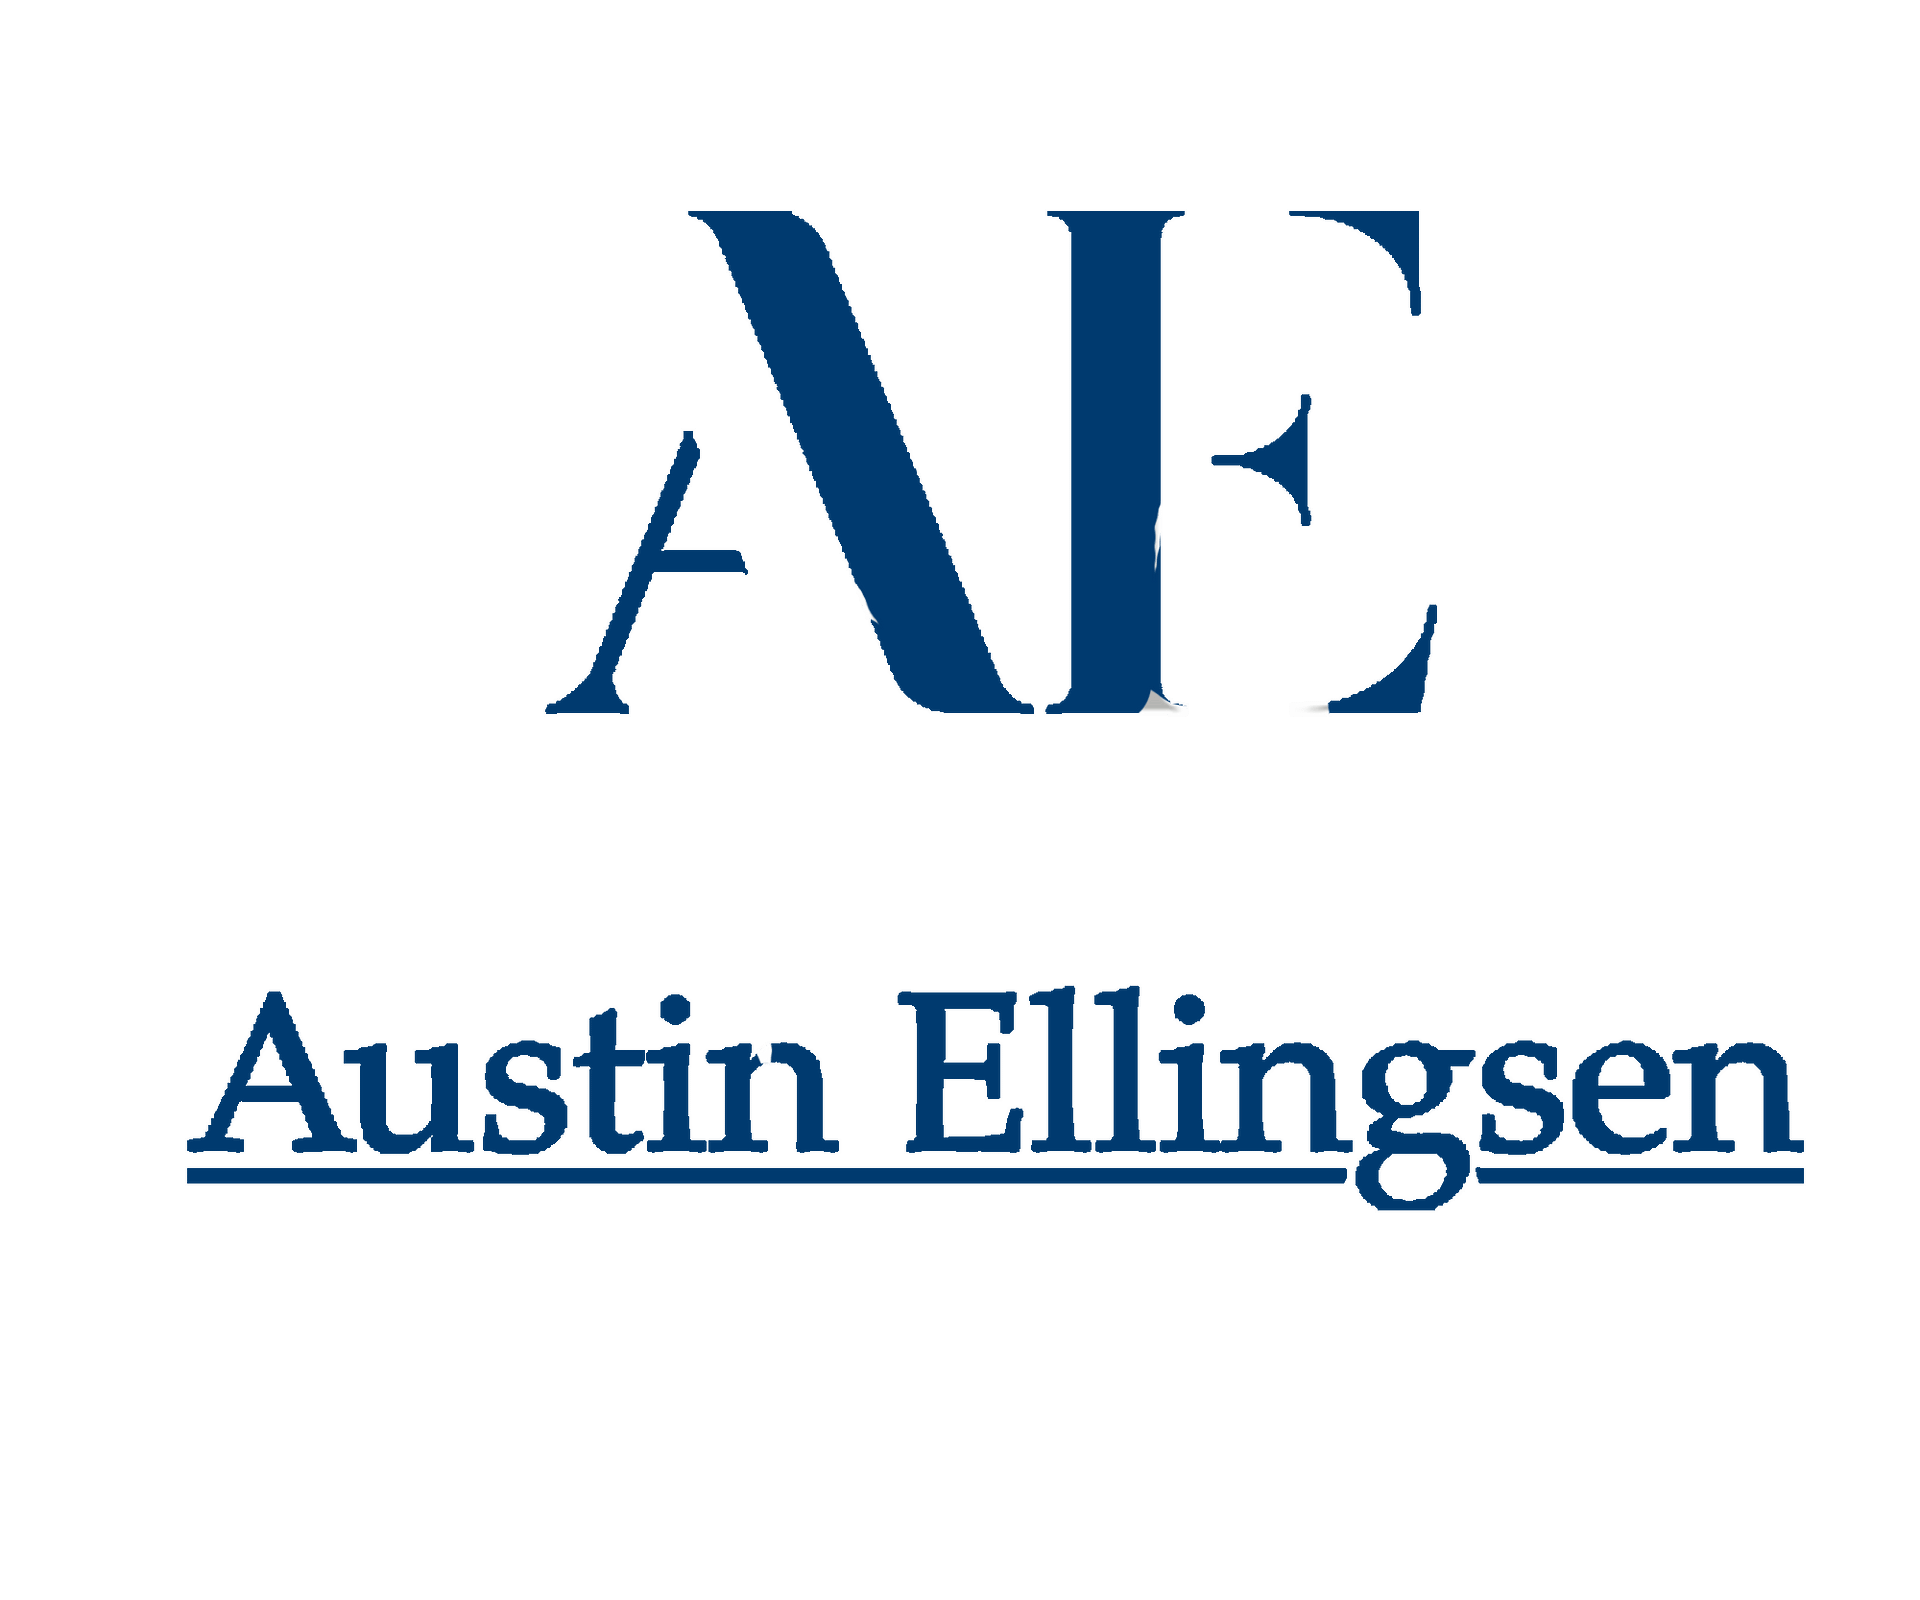 Located in USA, Austin Ellingsen collaborates with Multicats International.